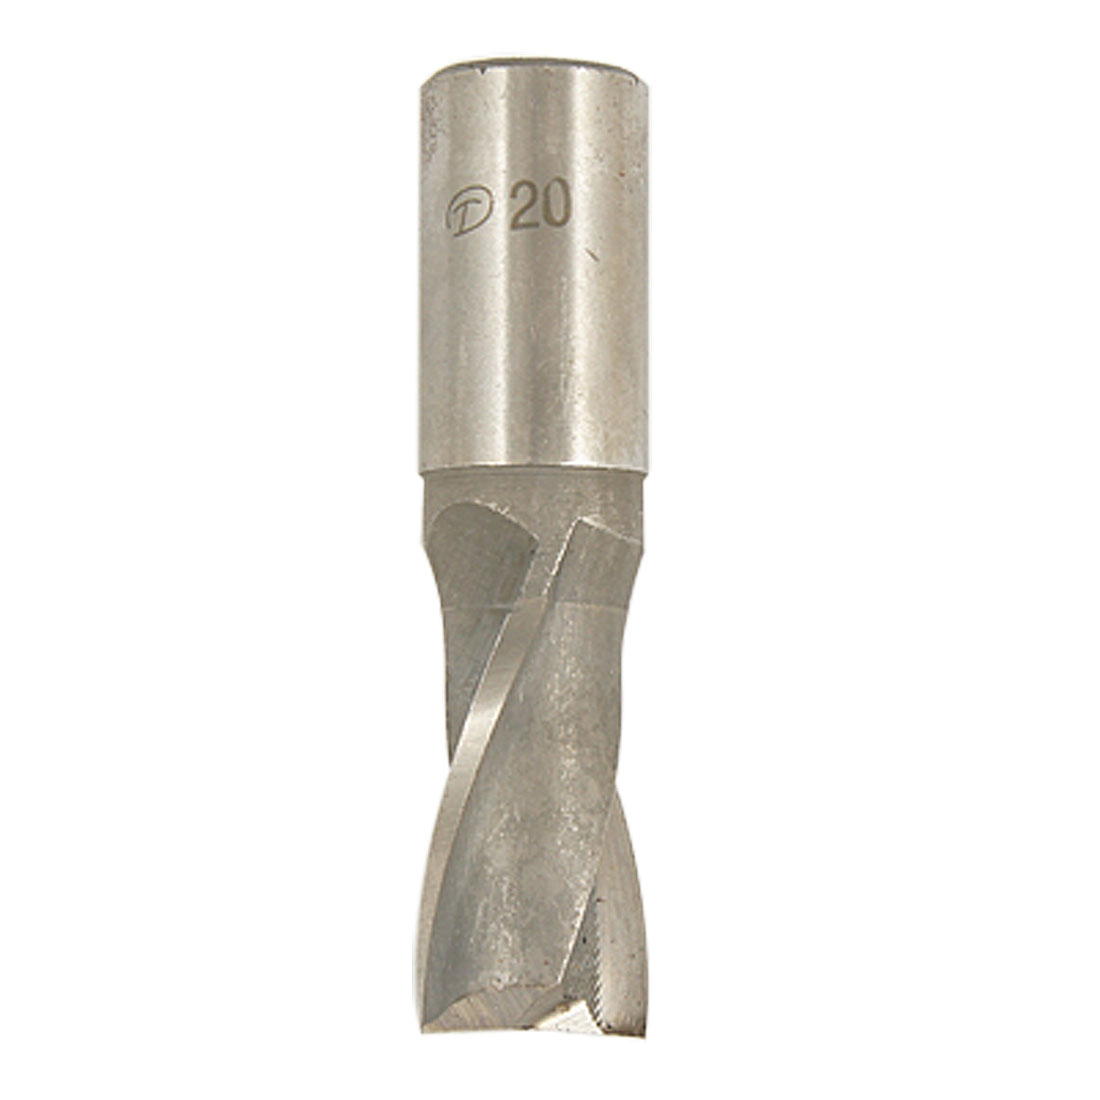 Straight Shank Two Flute 20mm Dia Keyway Milling Cutter Router Bit